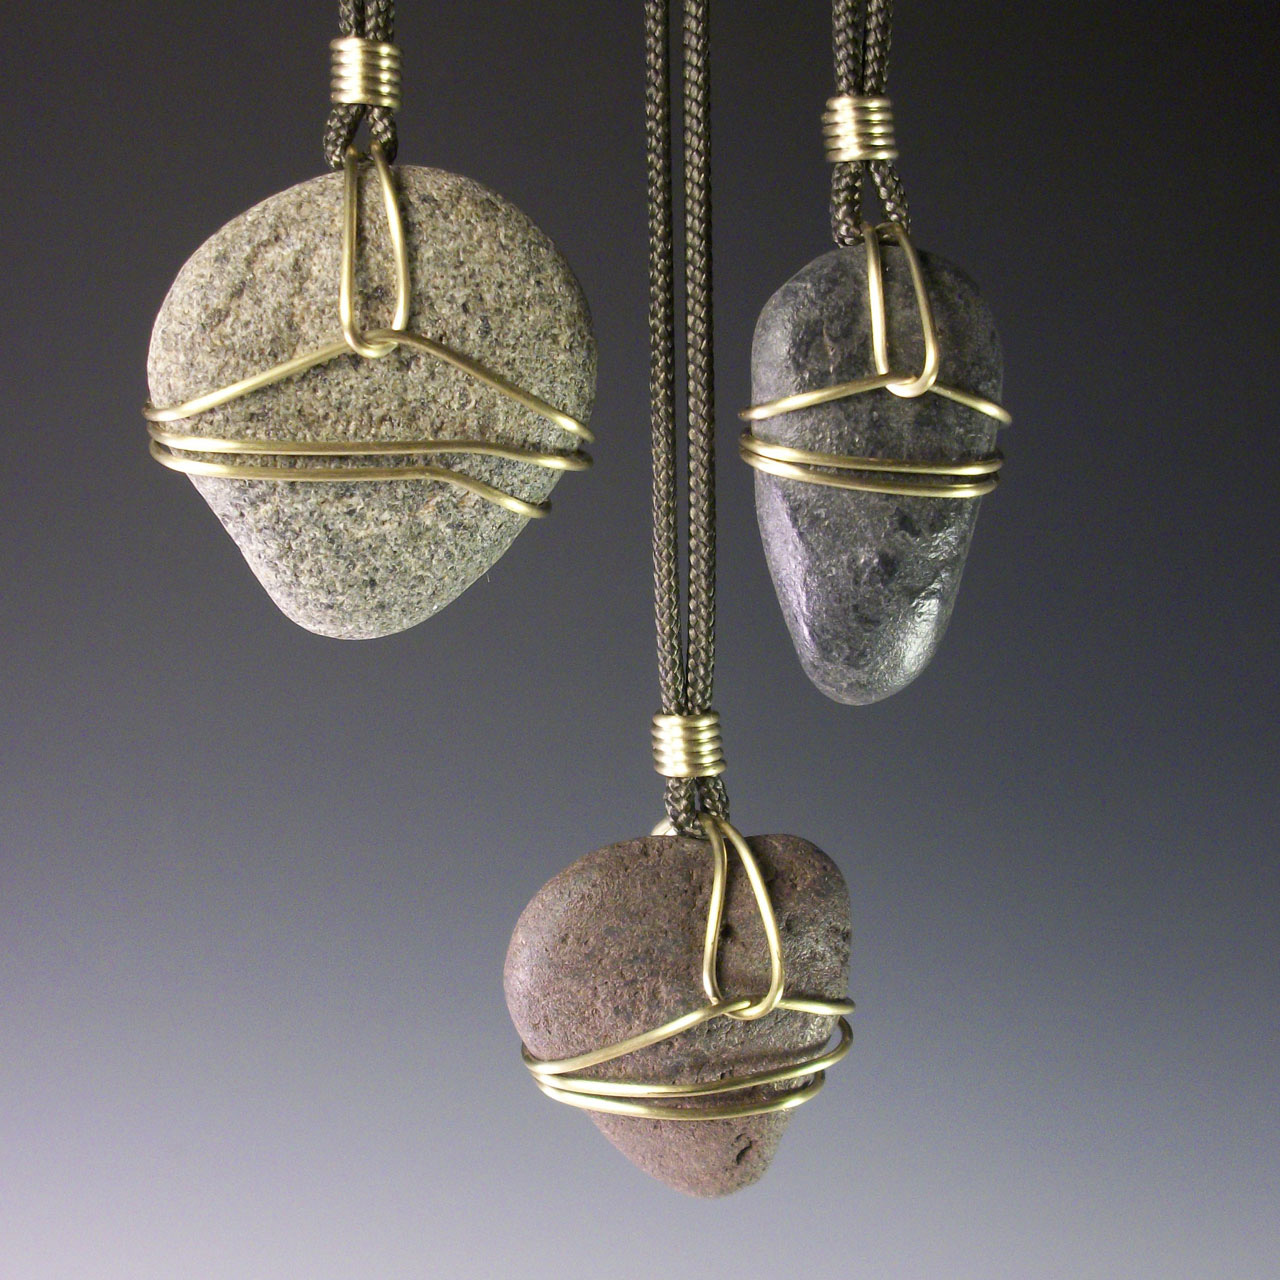 Beach Stones Necklace by Mckenna Hallett group shot of three